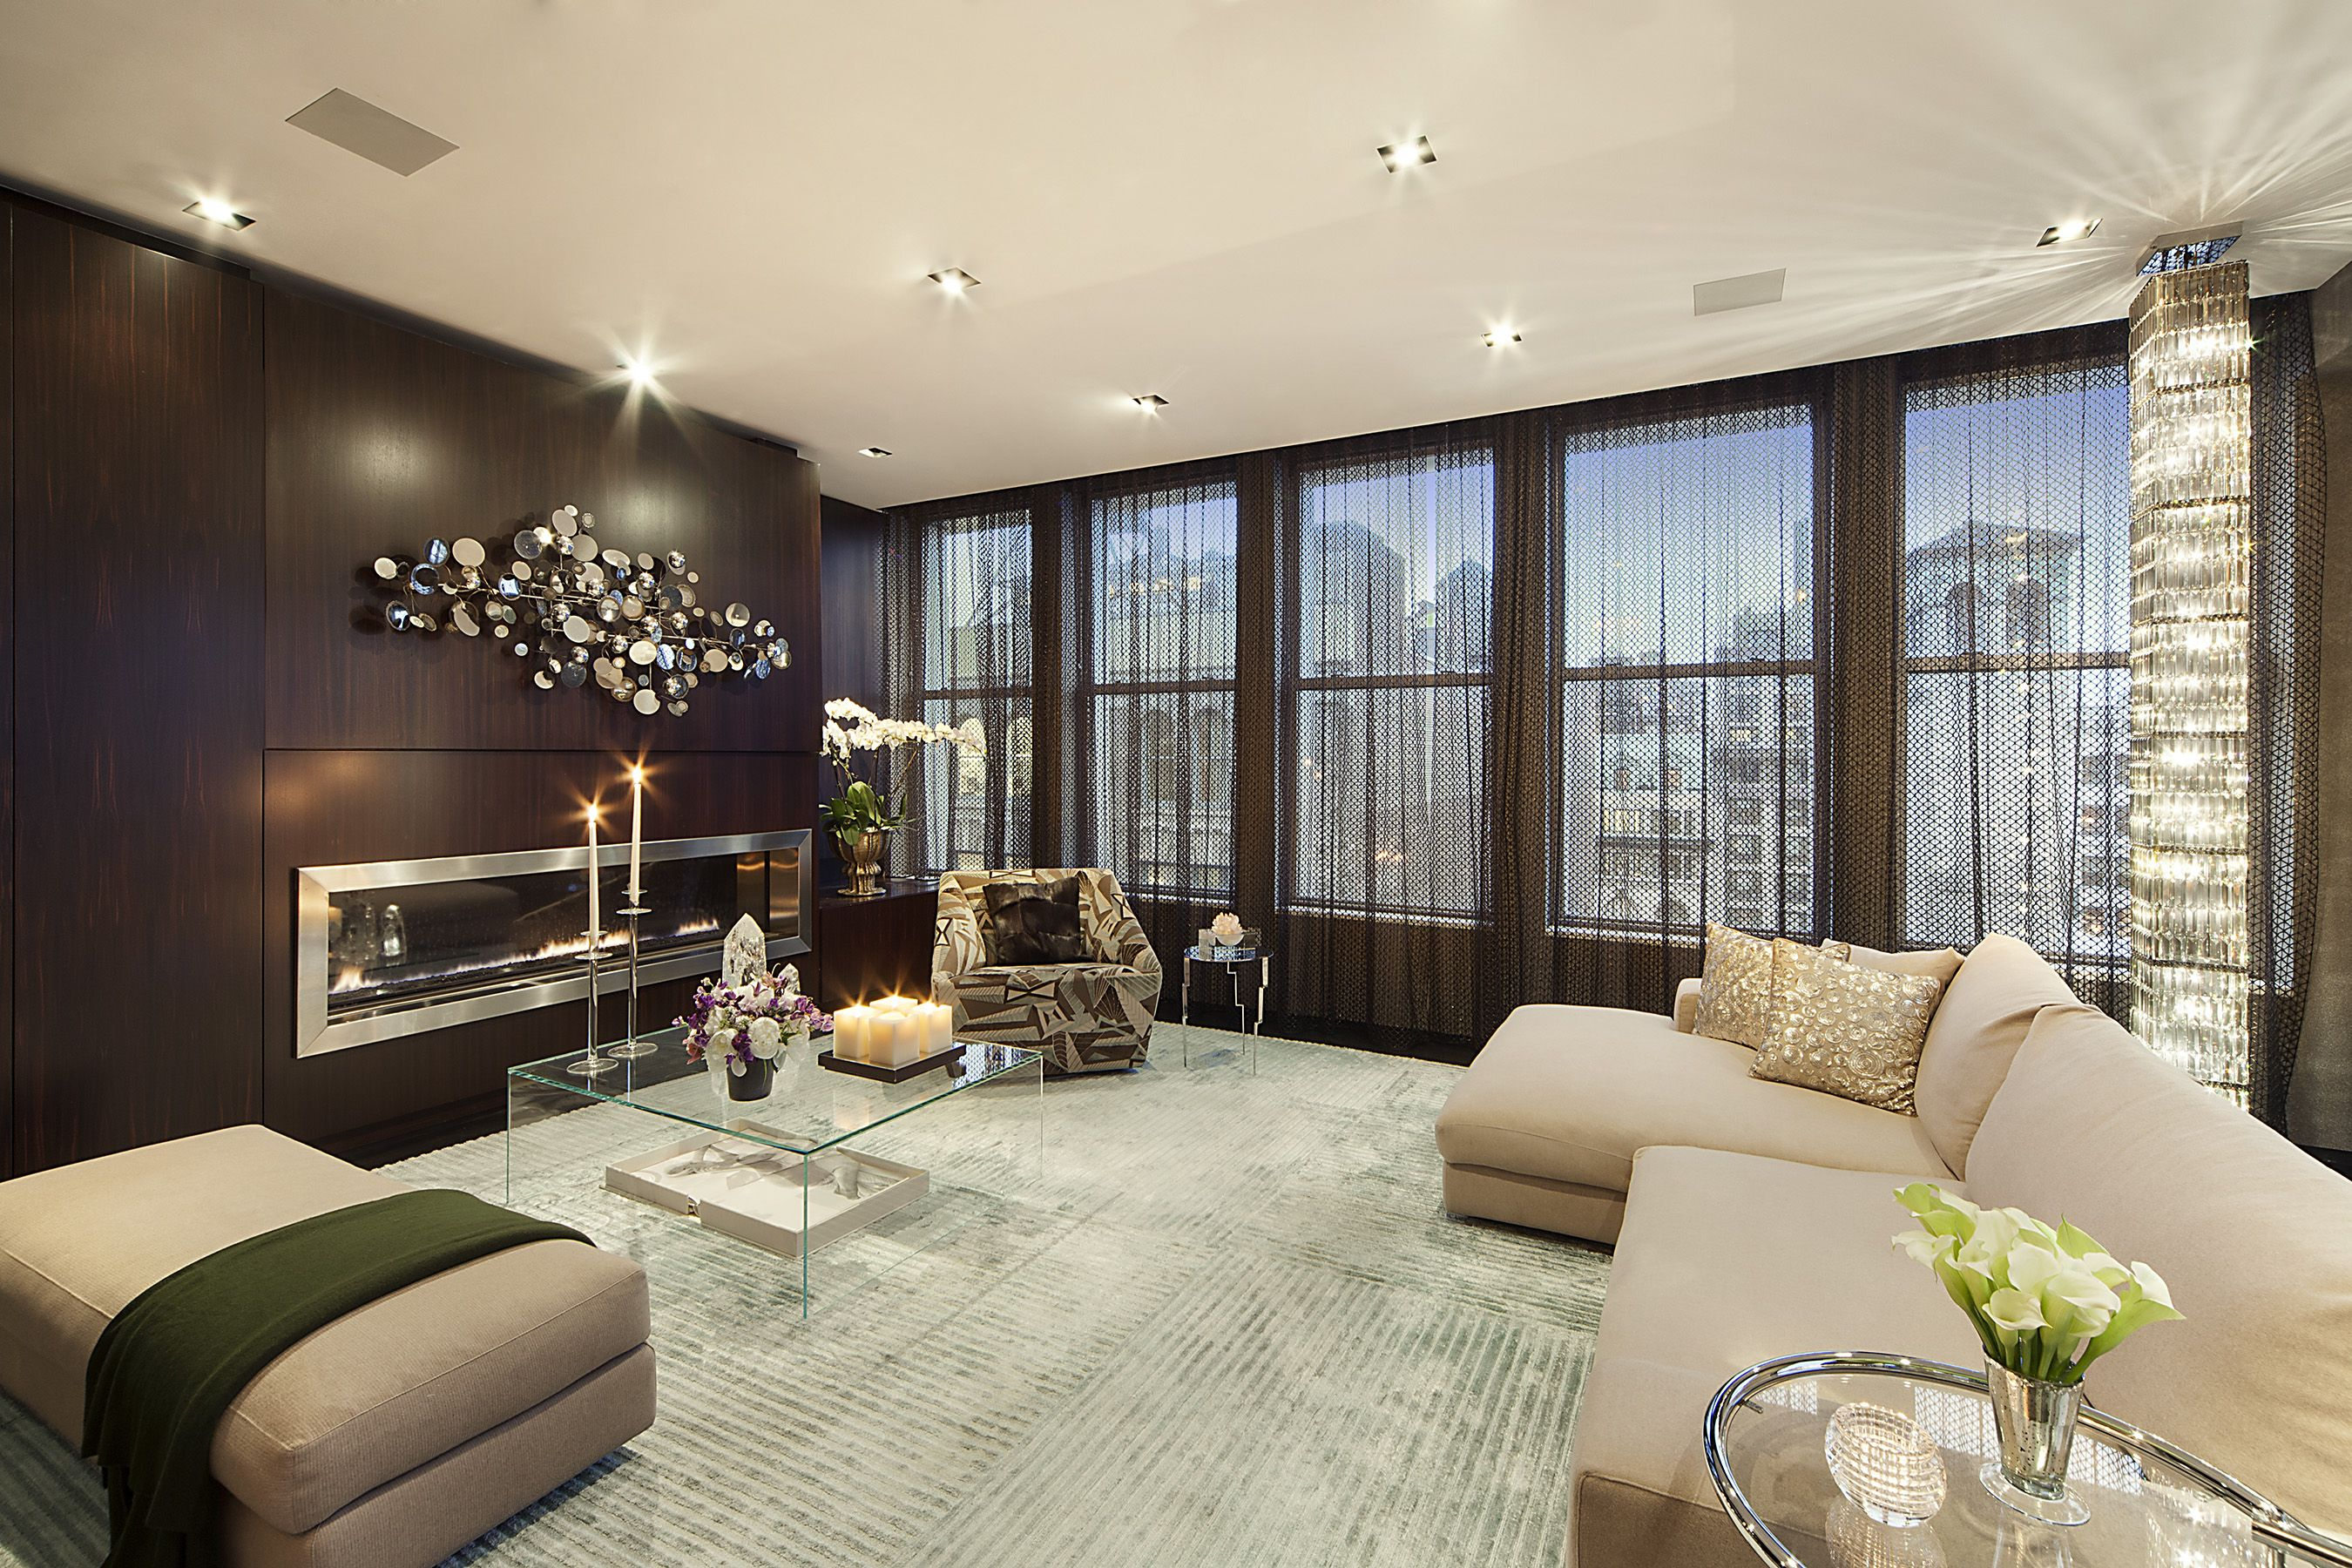 Cozy condo living rooms leverage lookbook  open house penthouses and living rooms